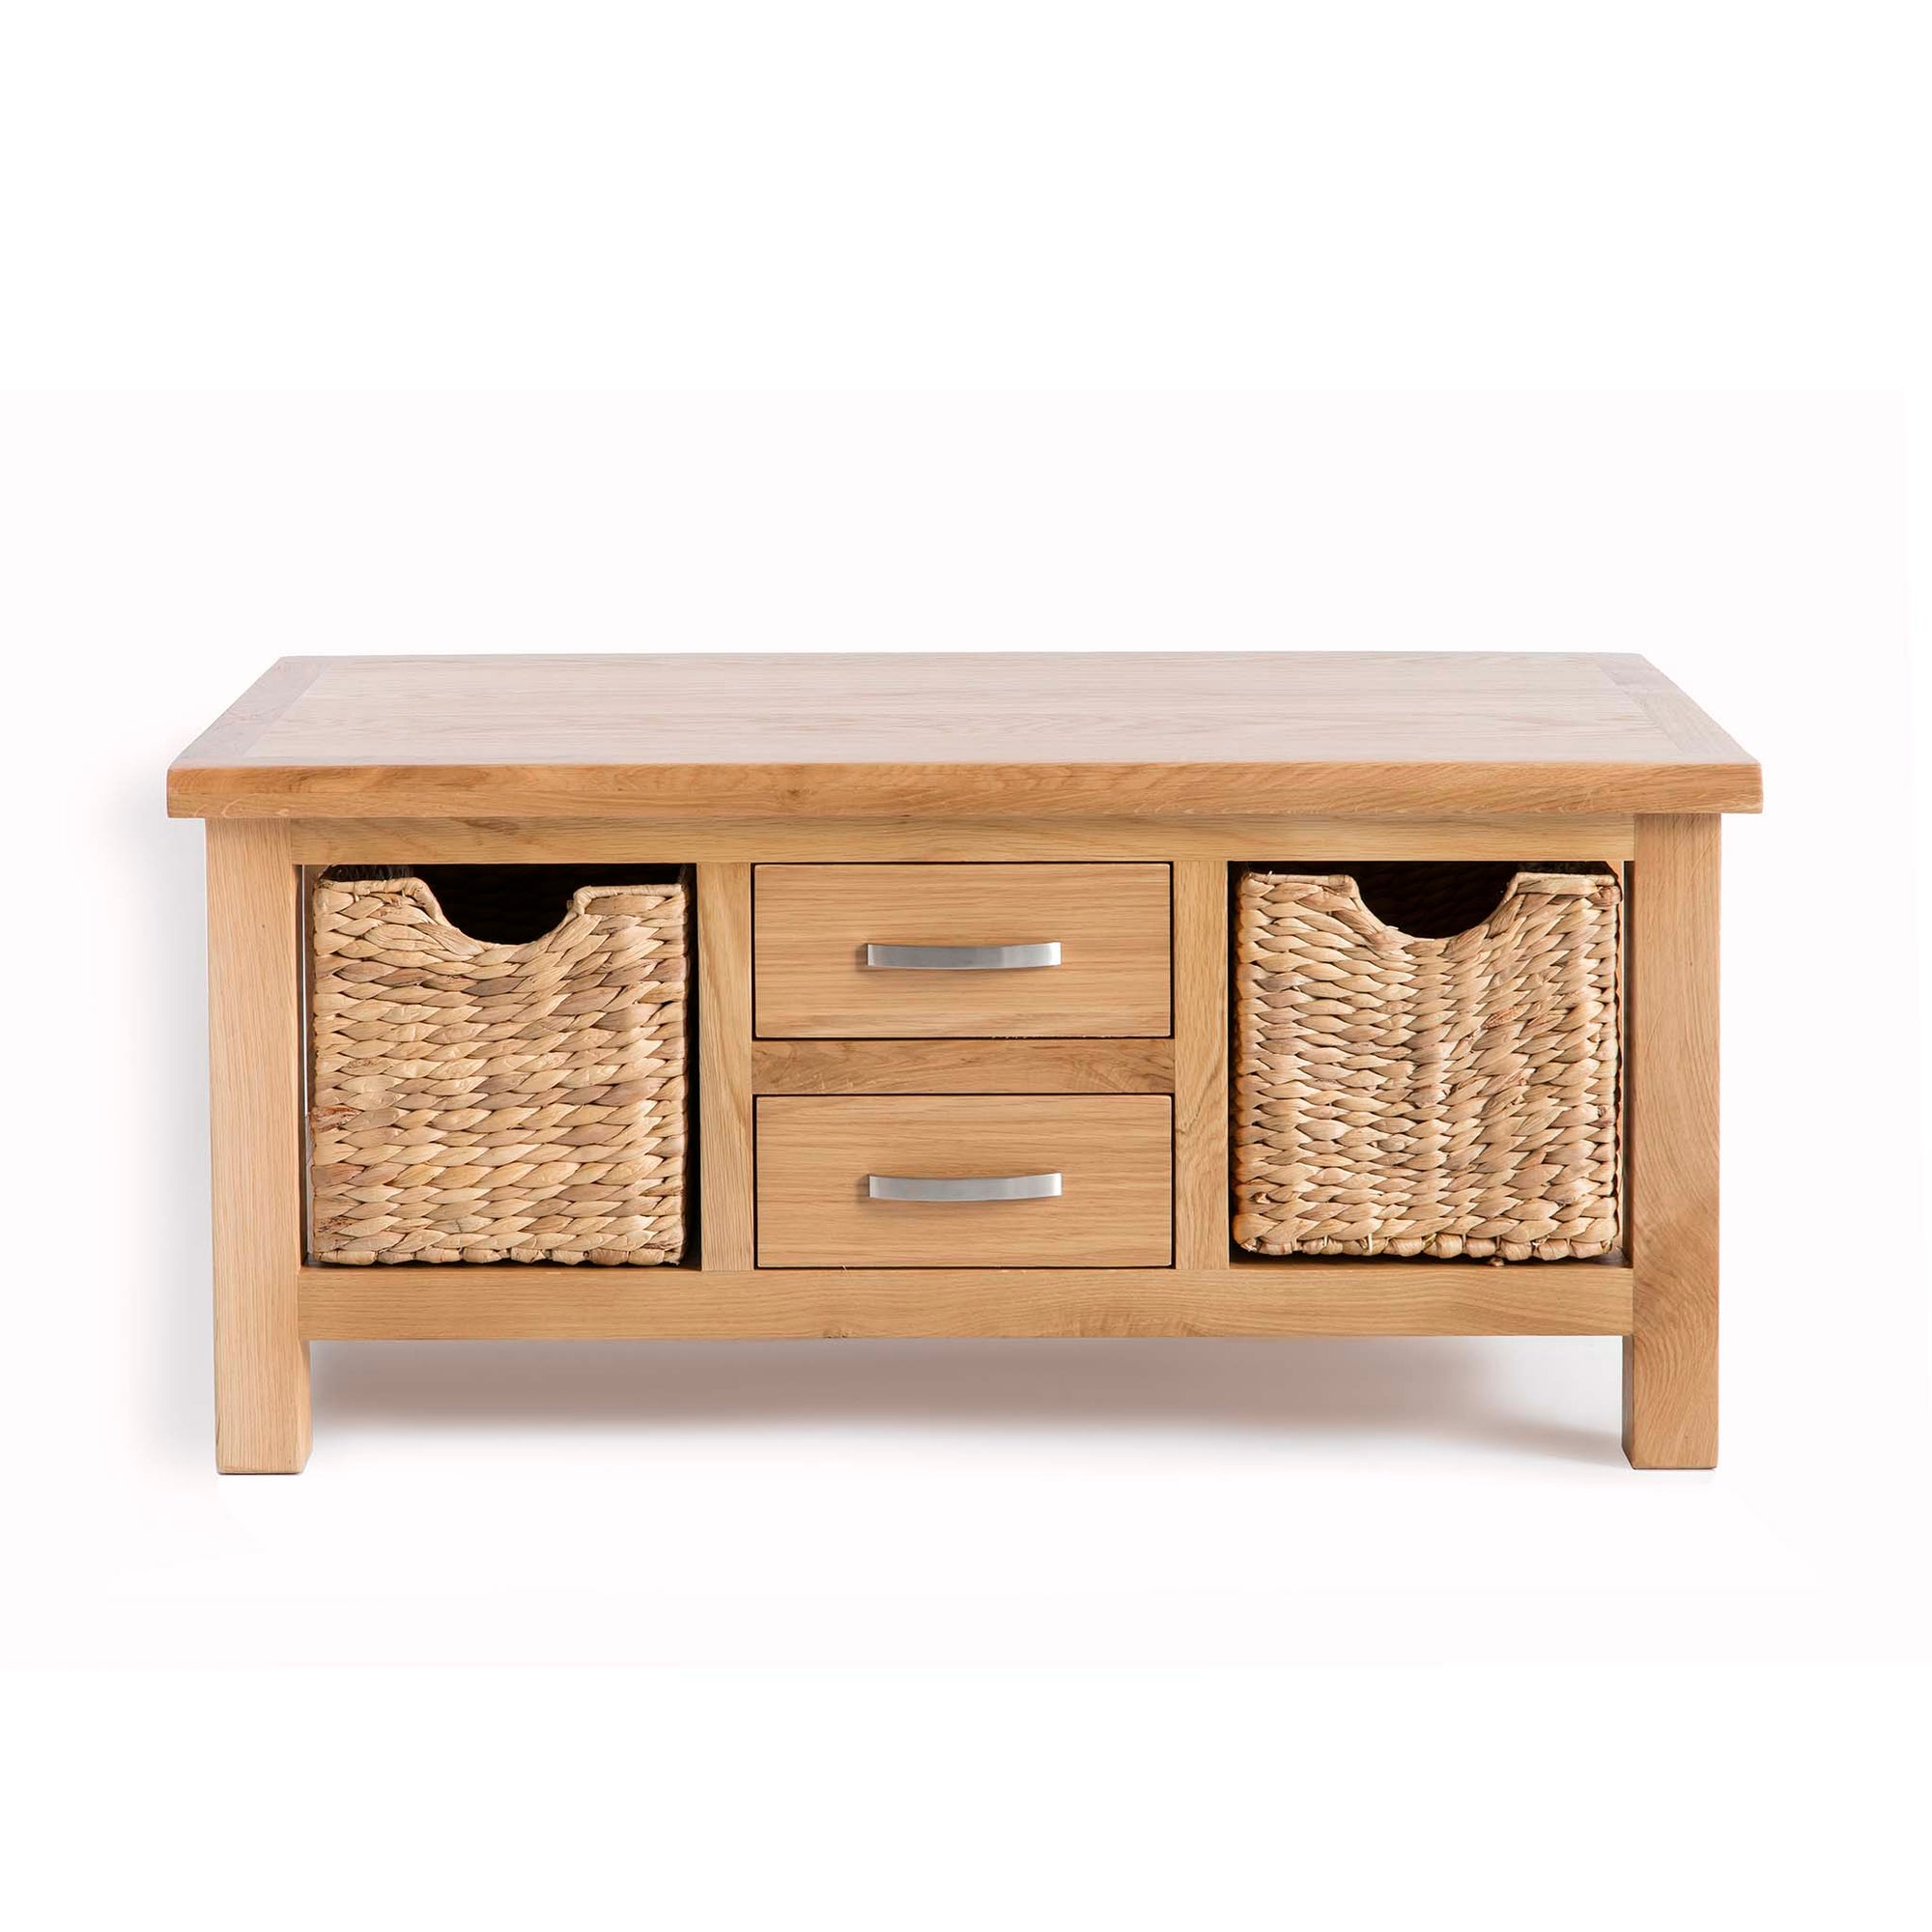 London Oak Coffee Table with Baskets by Roseland Furniture